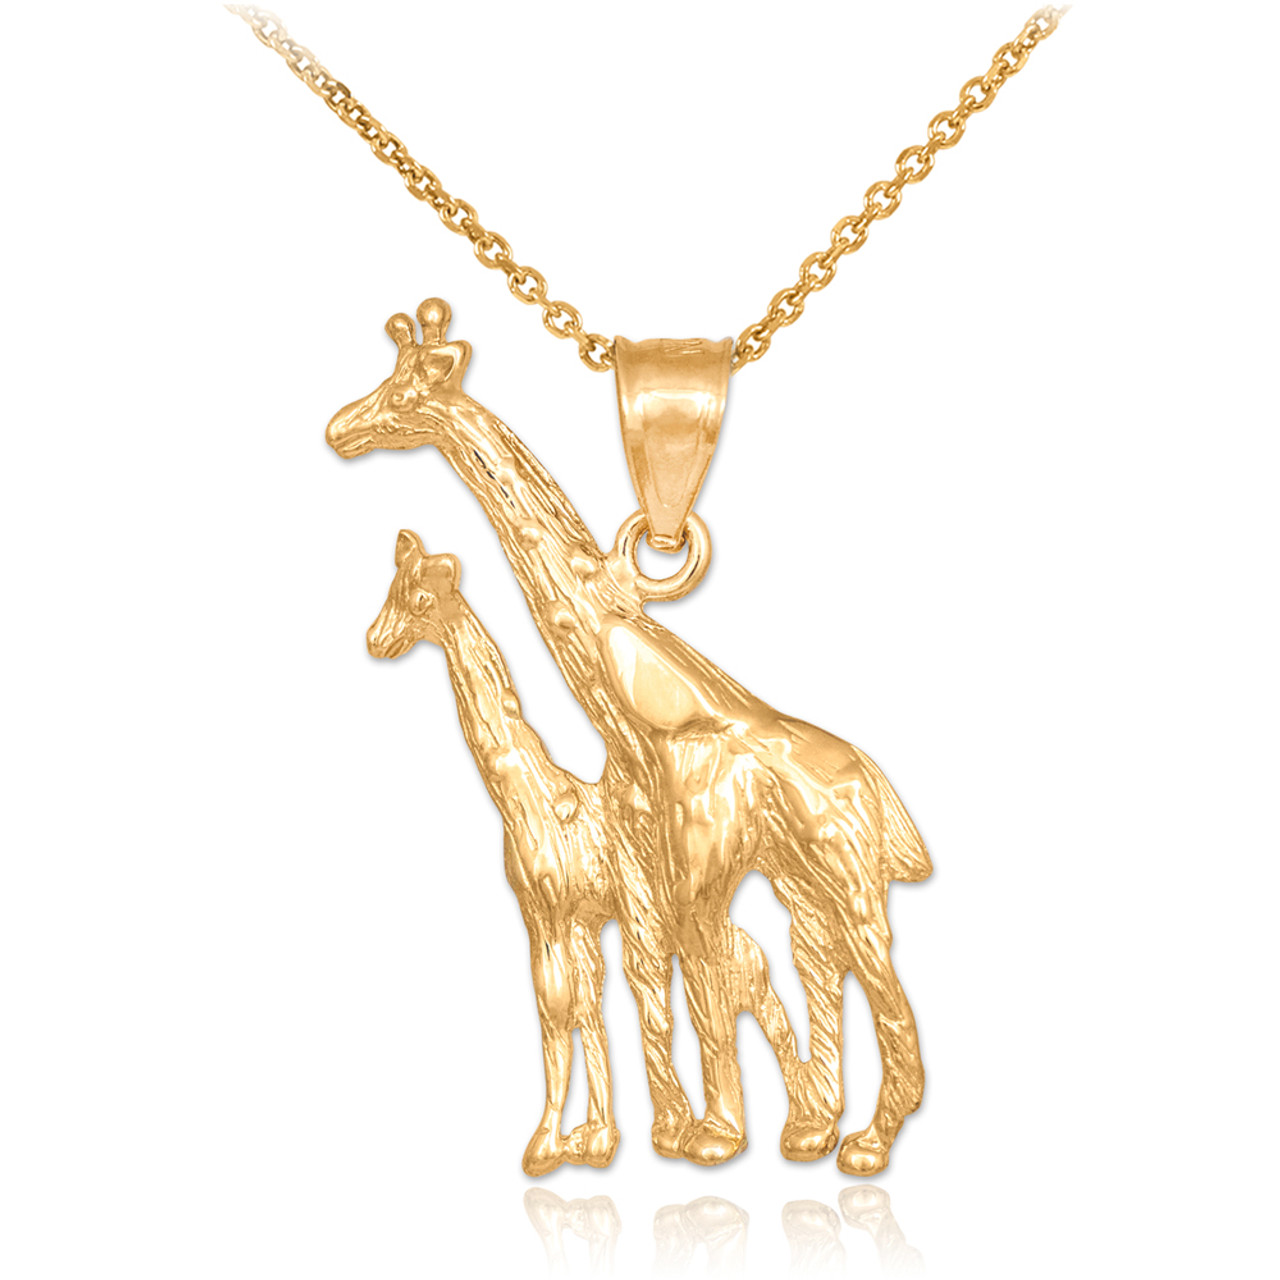 diamonds white mv sterling necklace click kaystore kay giraffe expand black silver pendant to zm en